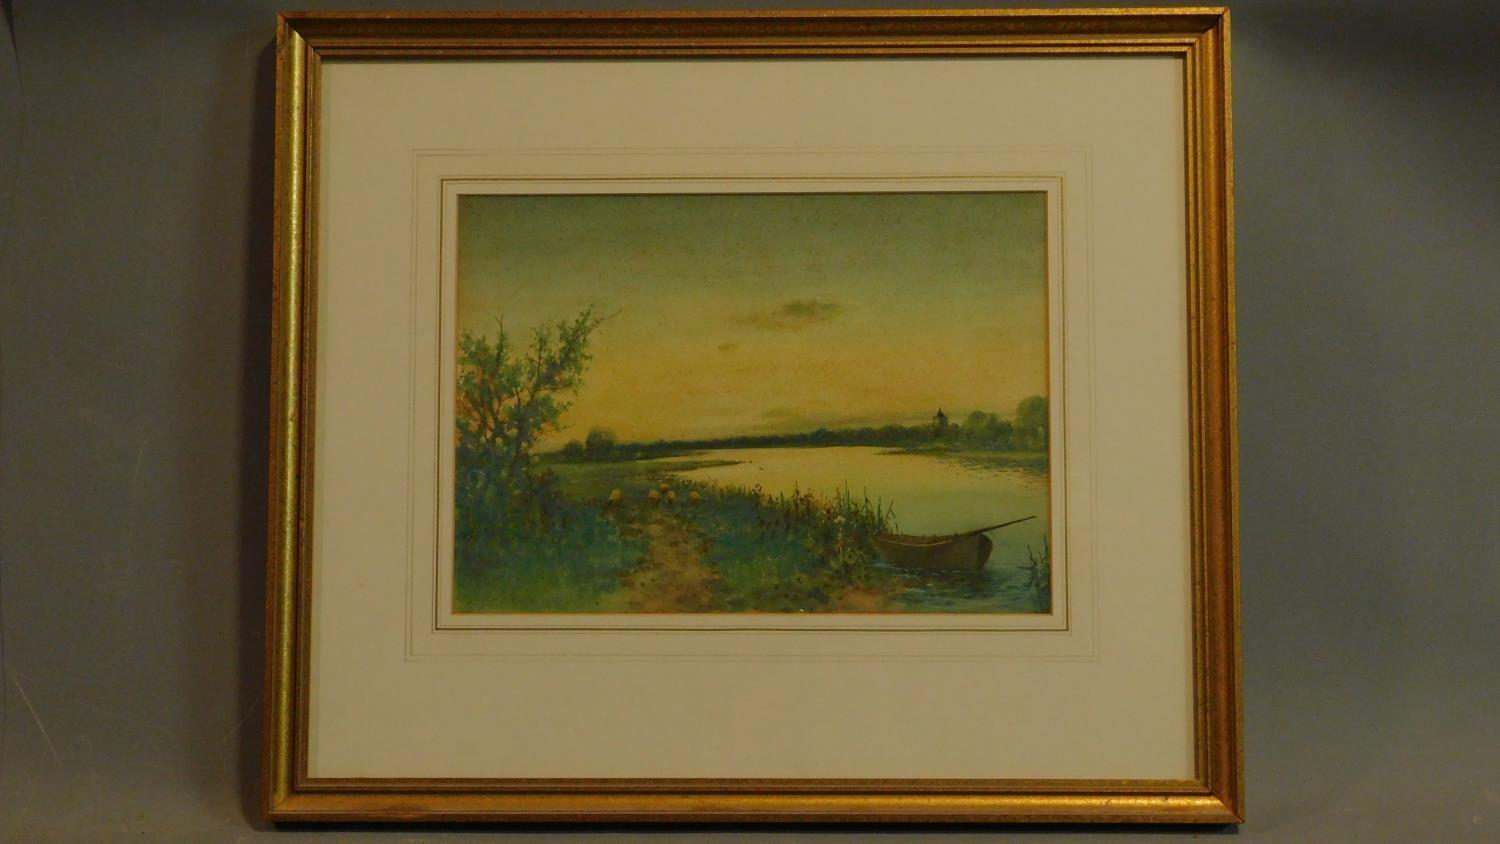 A framed and glazed watercolour, sheep on a path and boat in a riverscape, indistinctly signed.